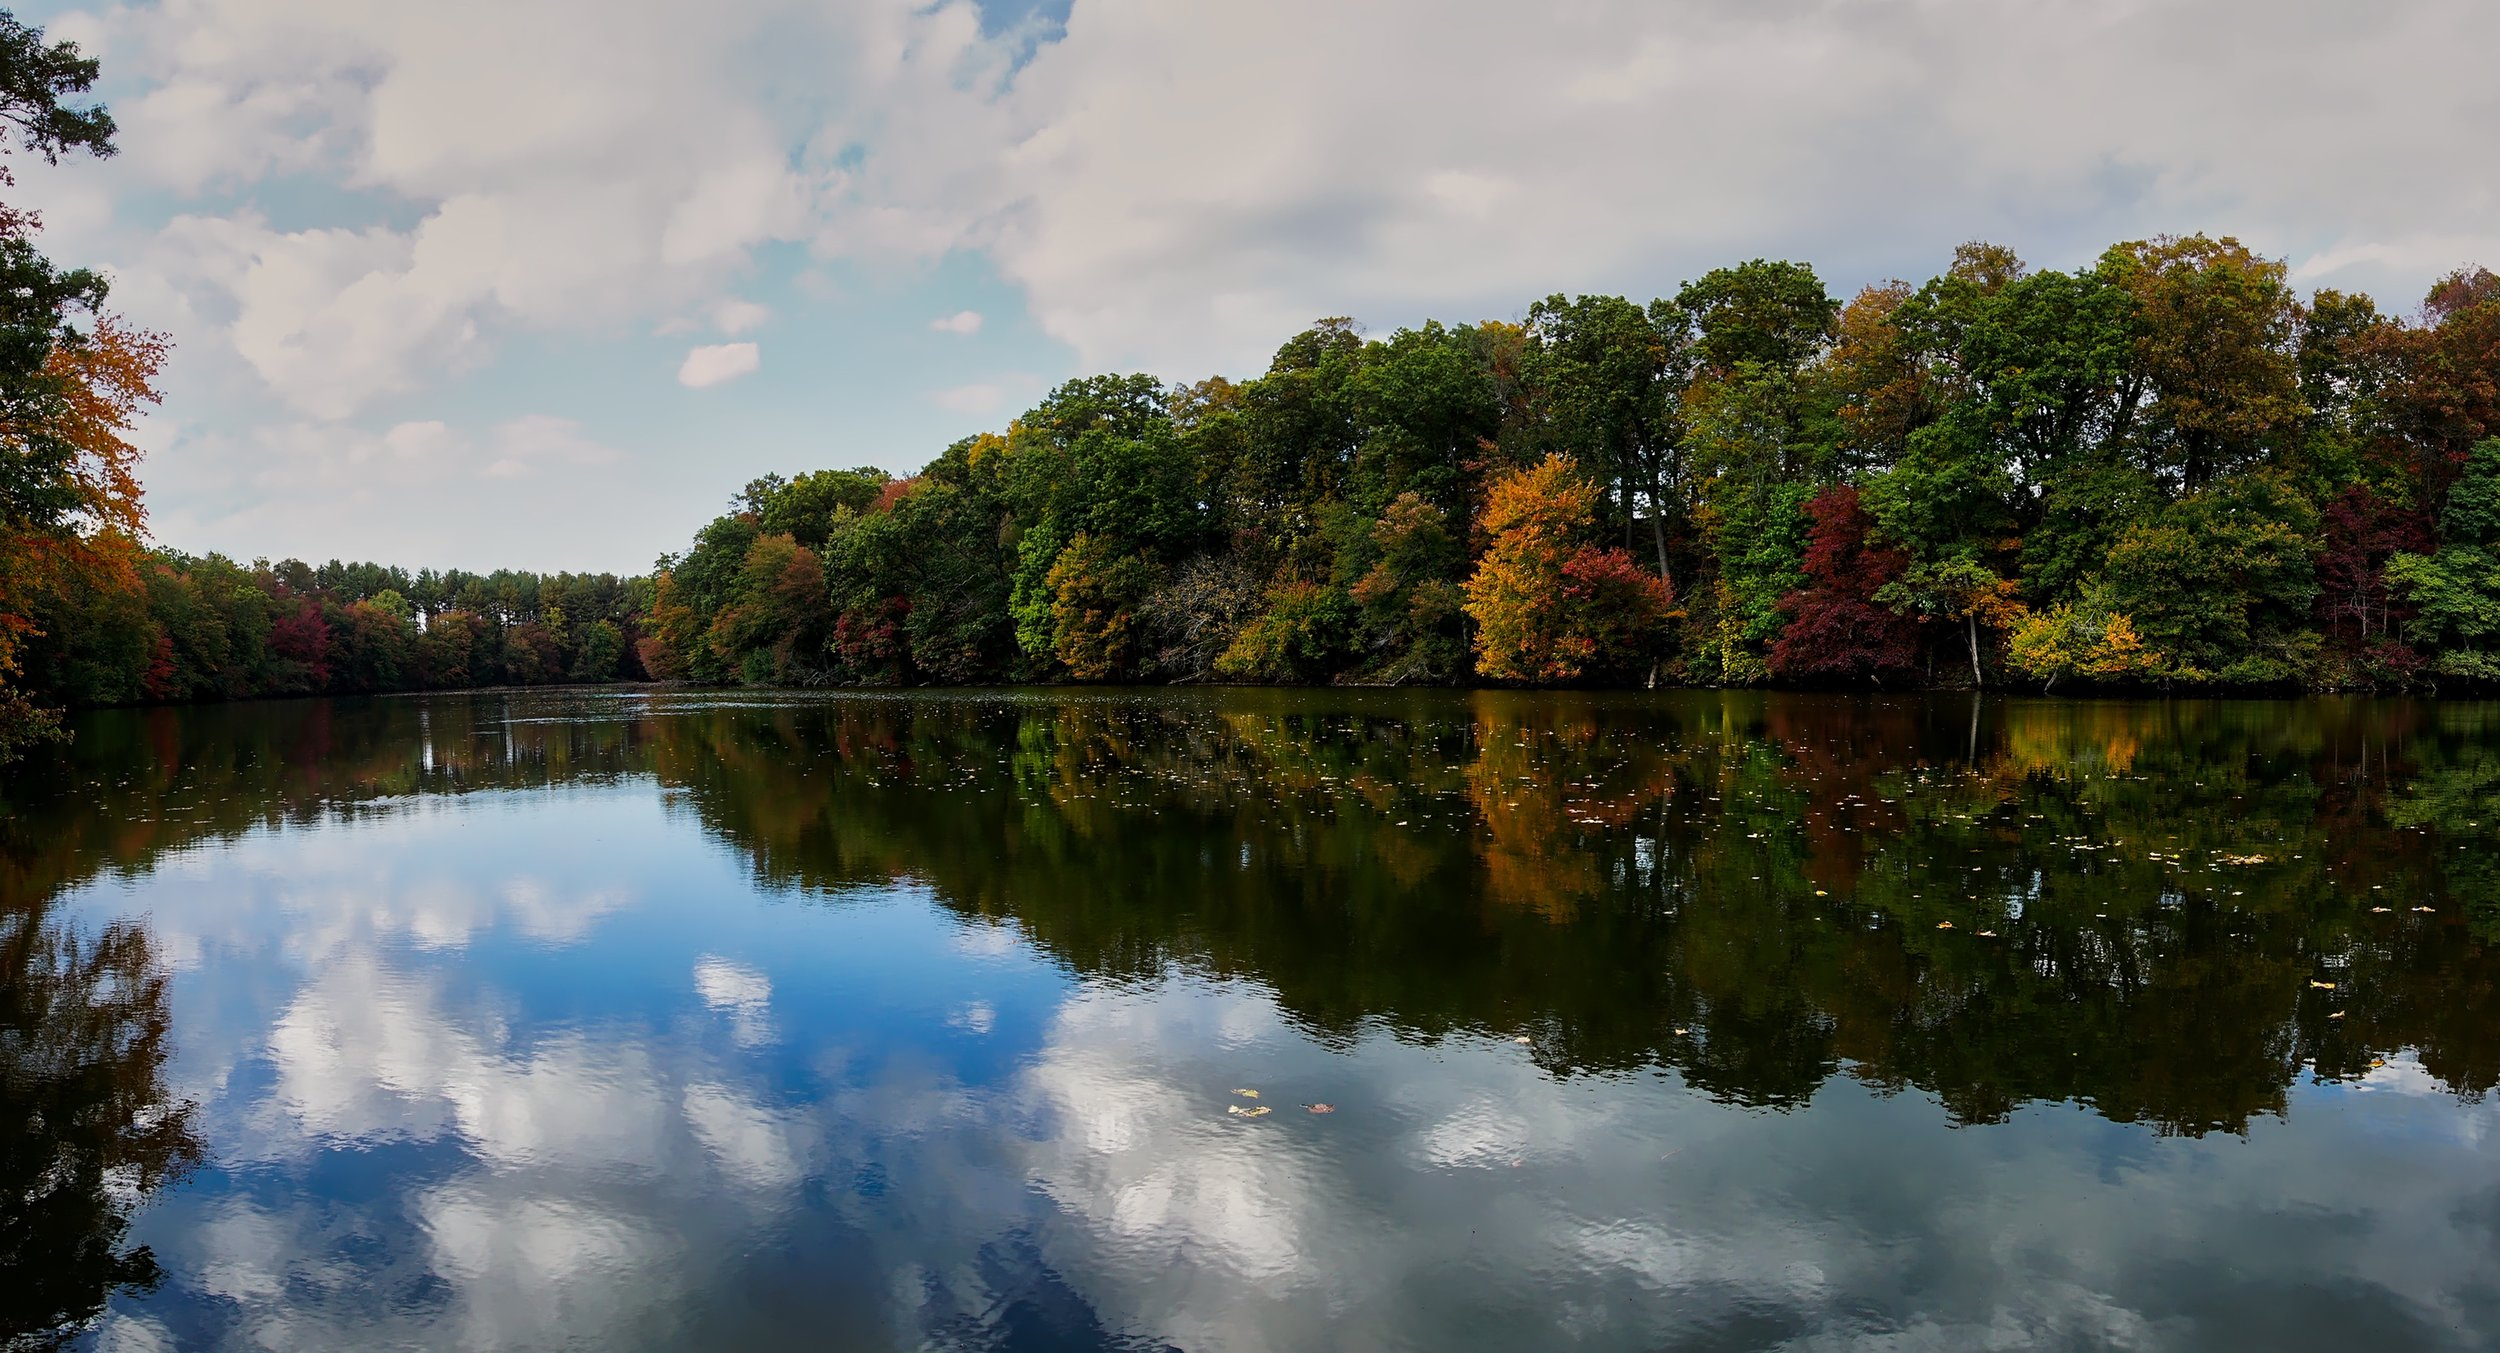 Fall foliage at the Octoraro Reservoir.